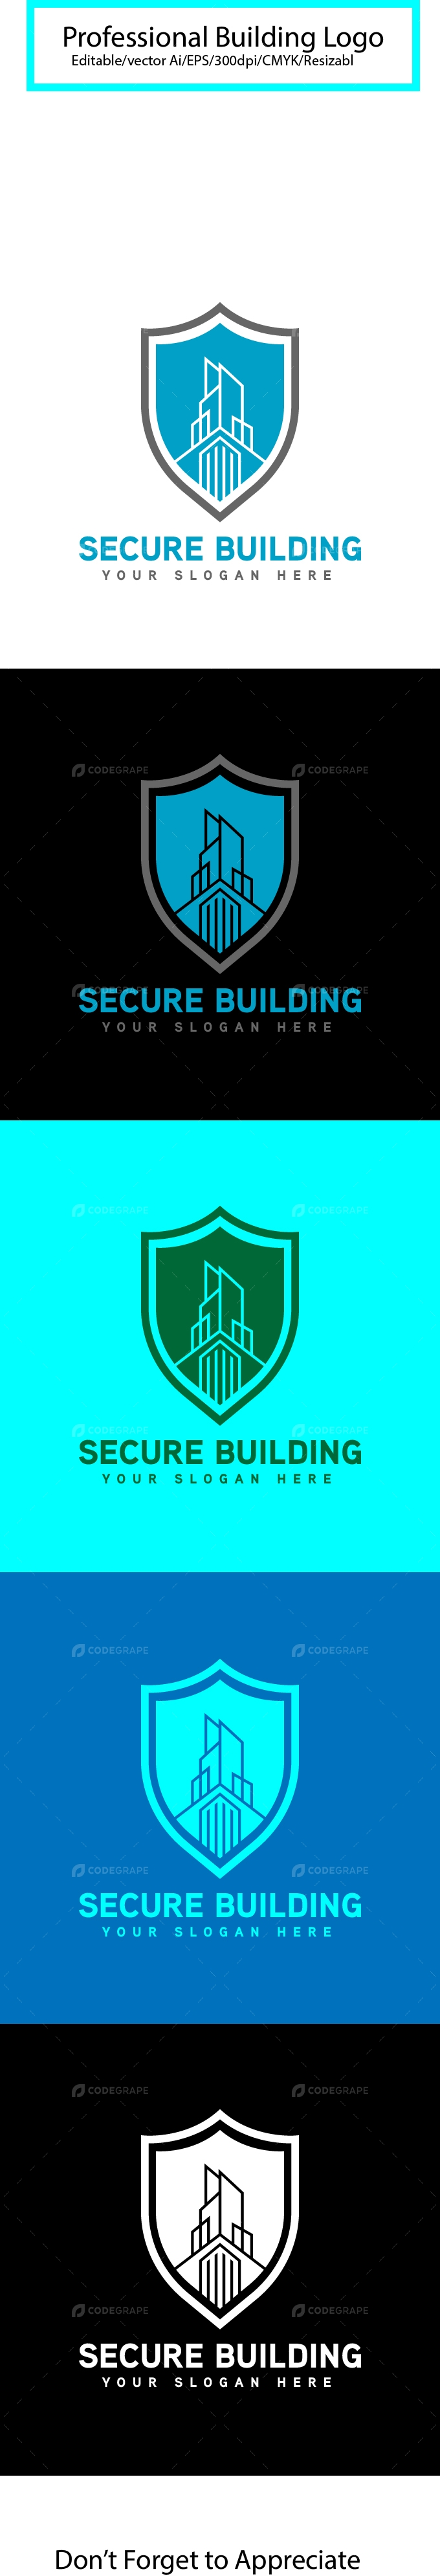 Secure Building Logo